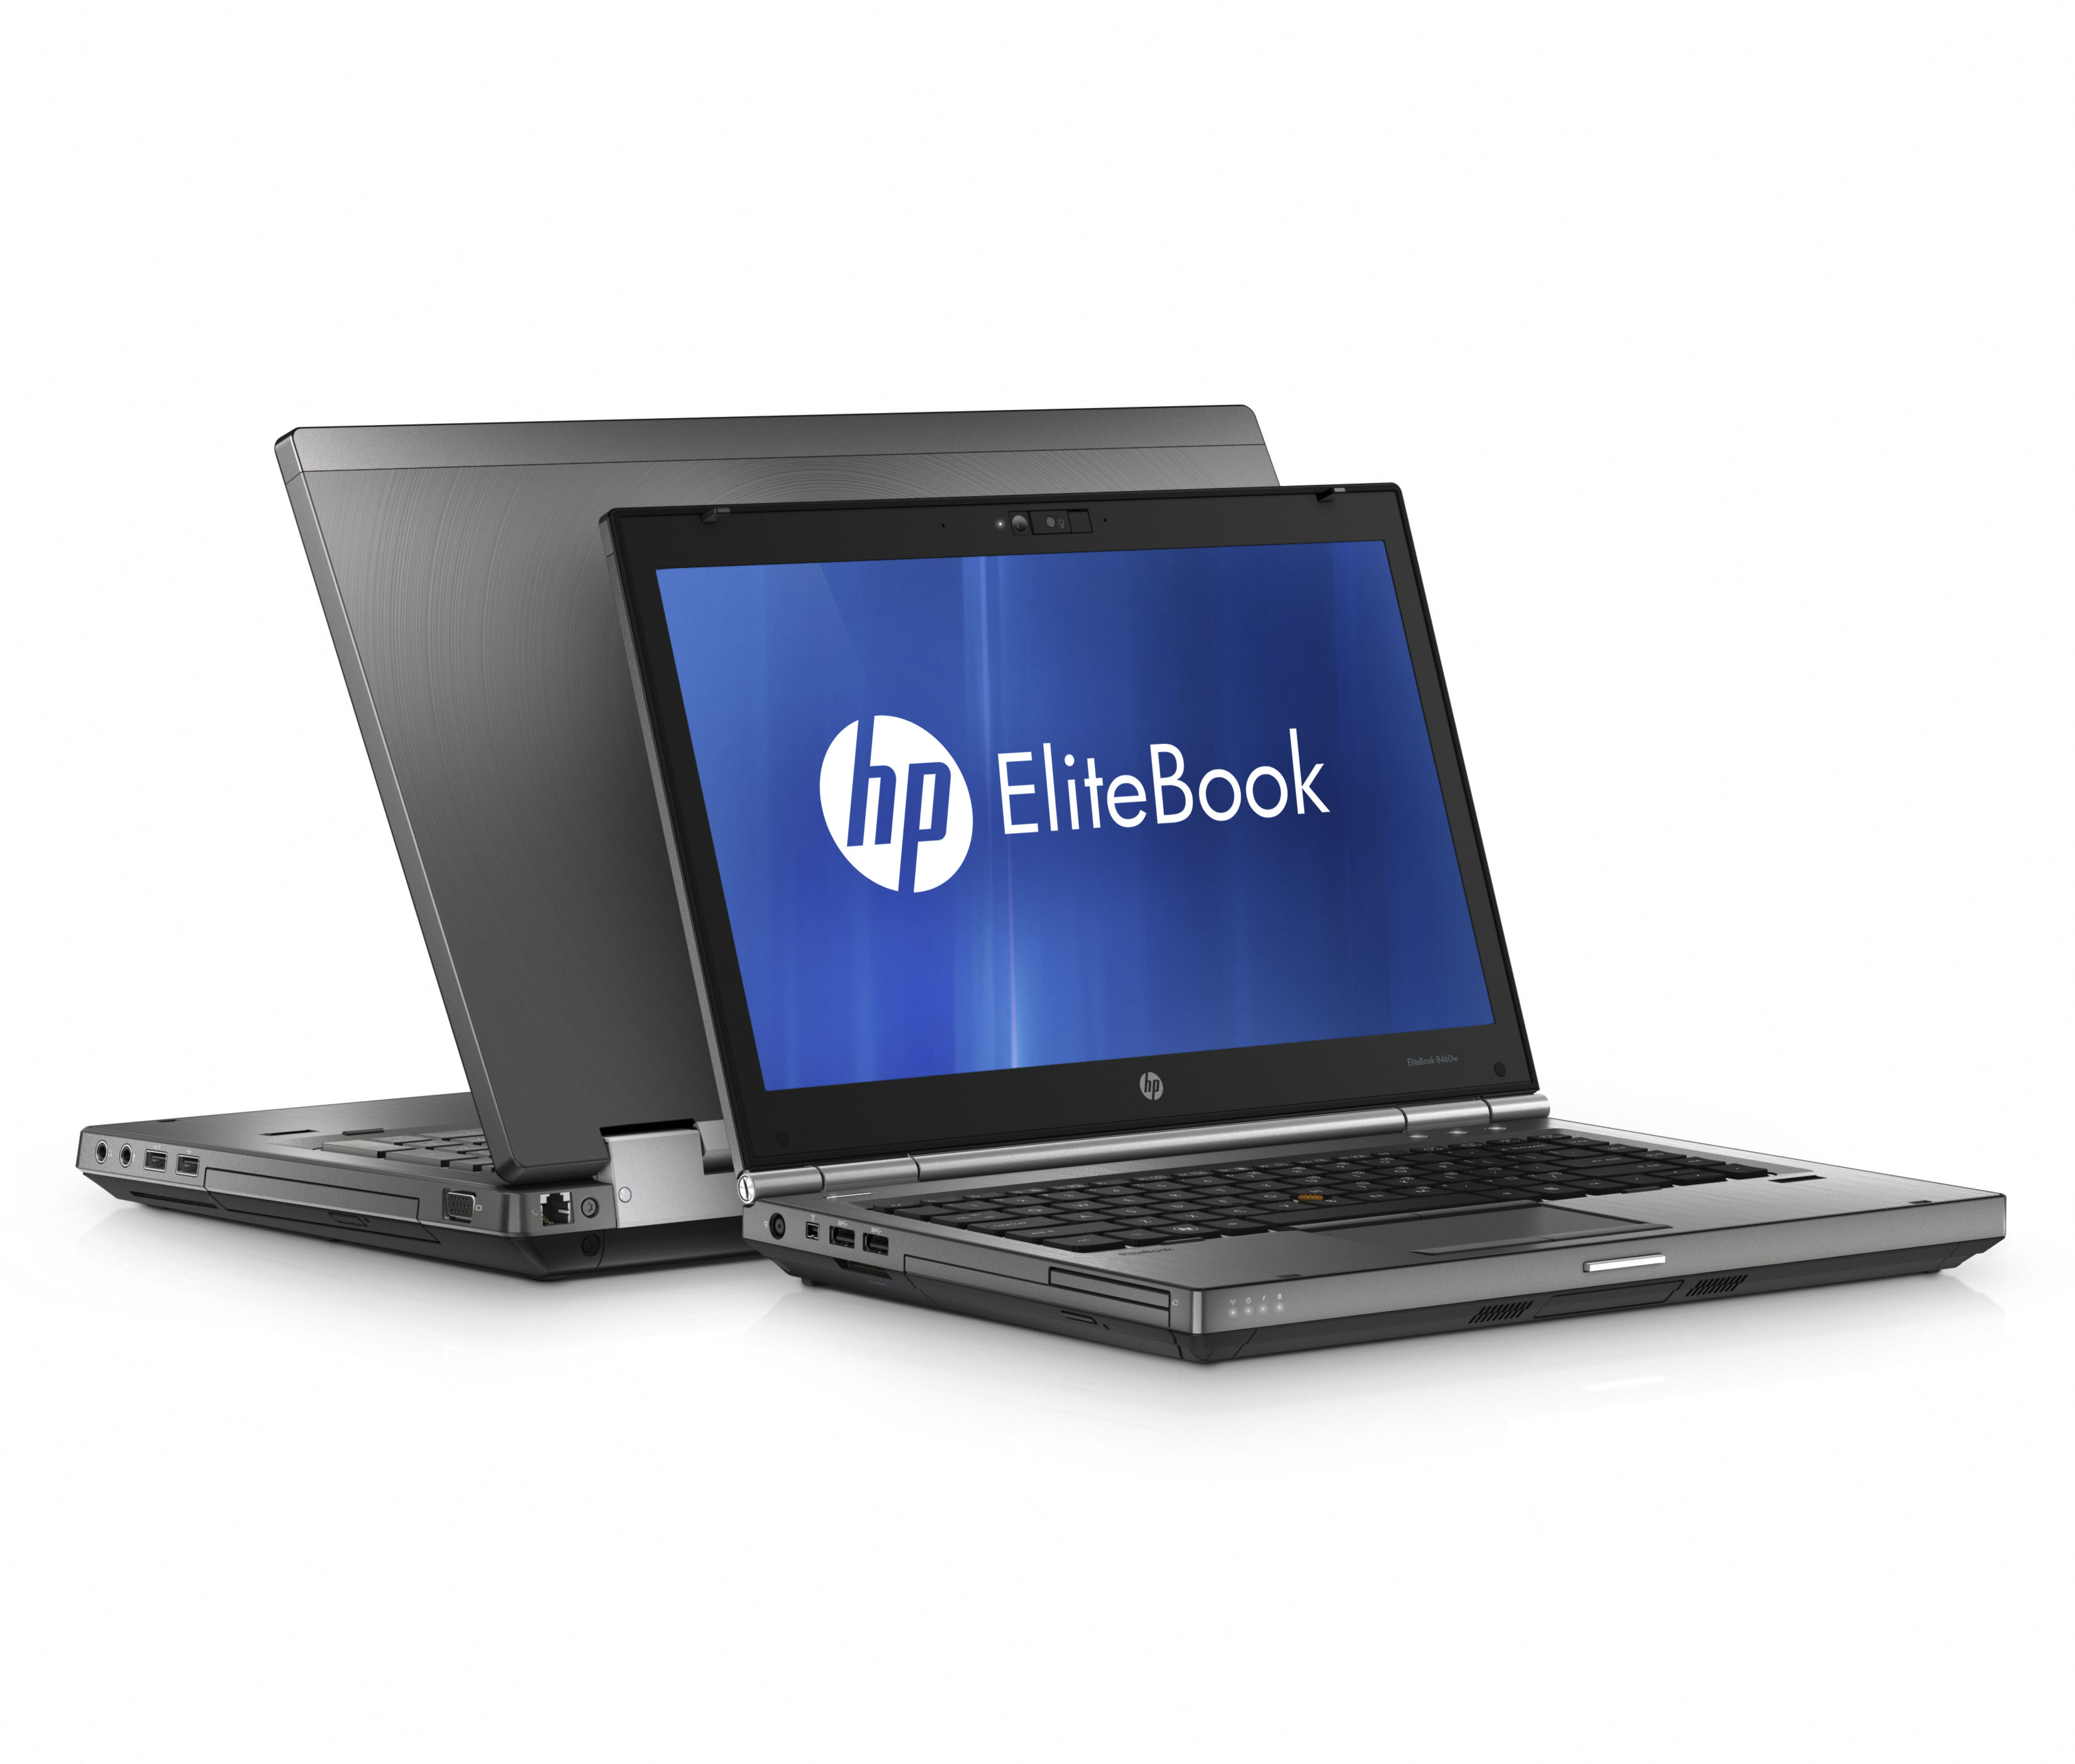 HP EliteBook 8760w Details, Specs and Pricing (Hands On Video)